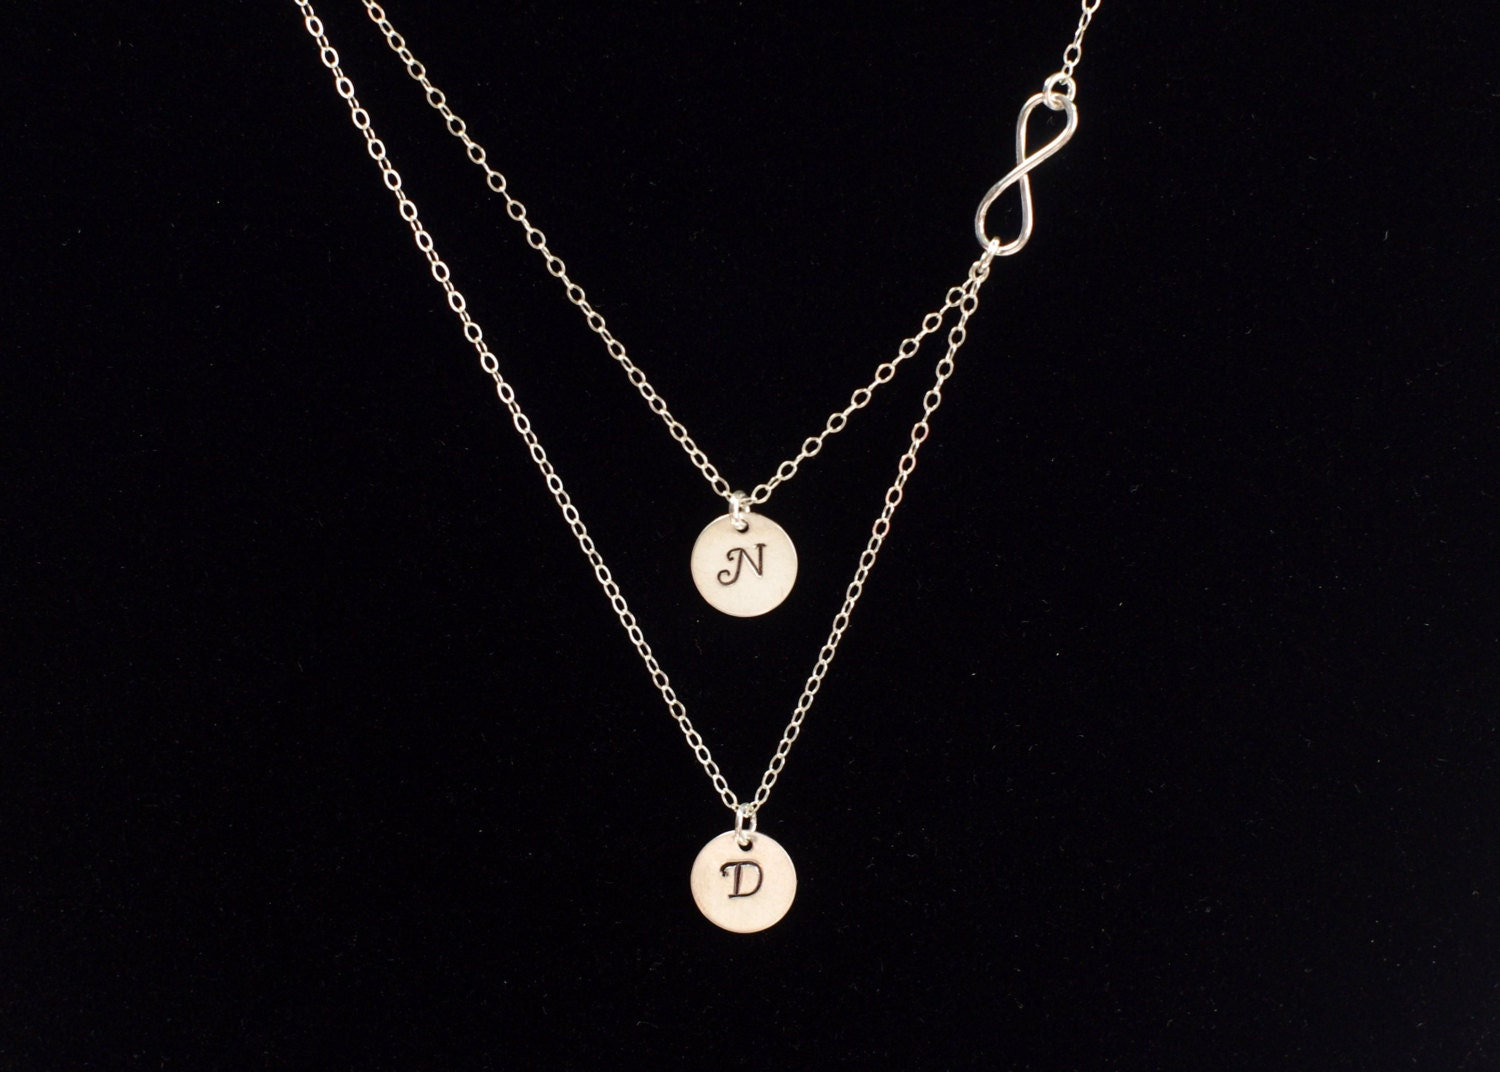 layered necklace strand necklace two initial necklace